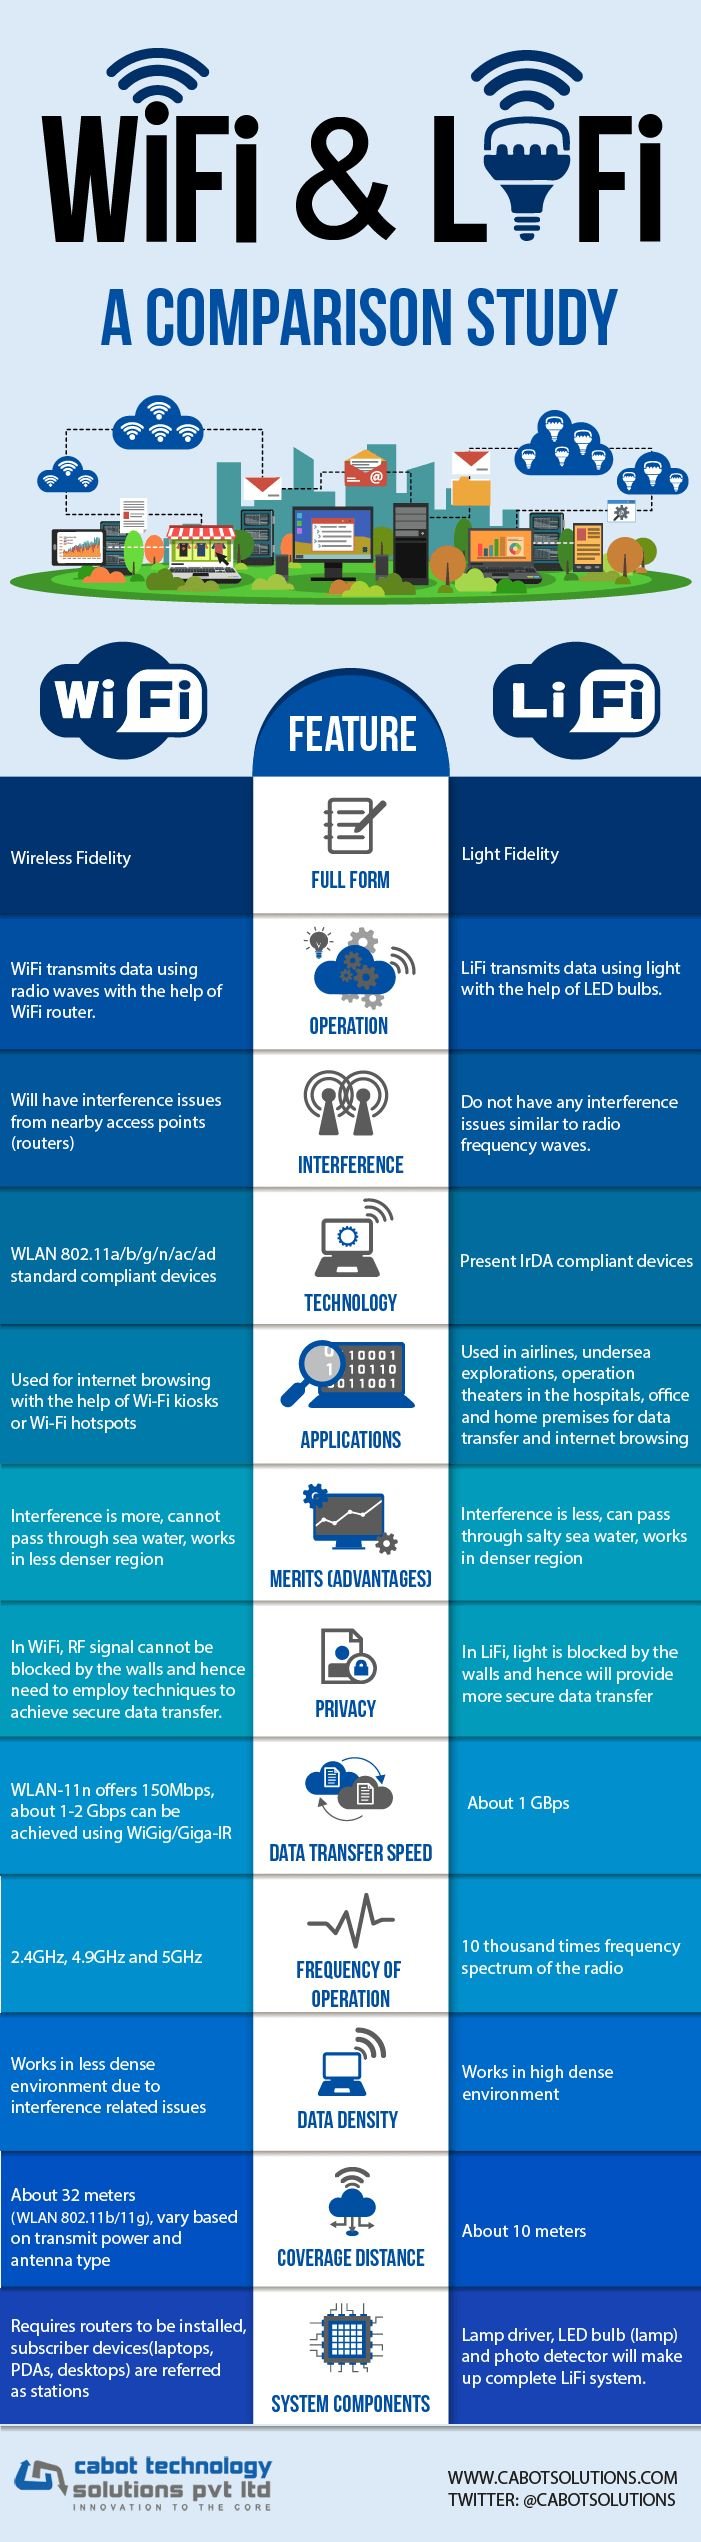 WiFi and LiFi – A Comparison Study | Infographic by Cabot Technology Solutions http://amzn.to/2pfvyHP